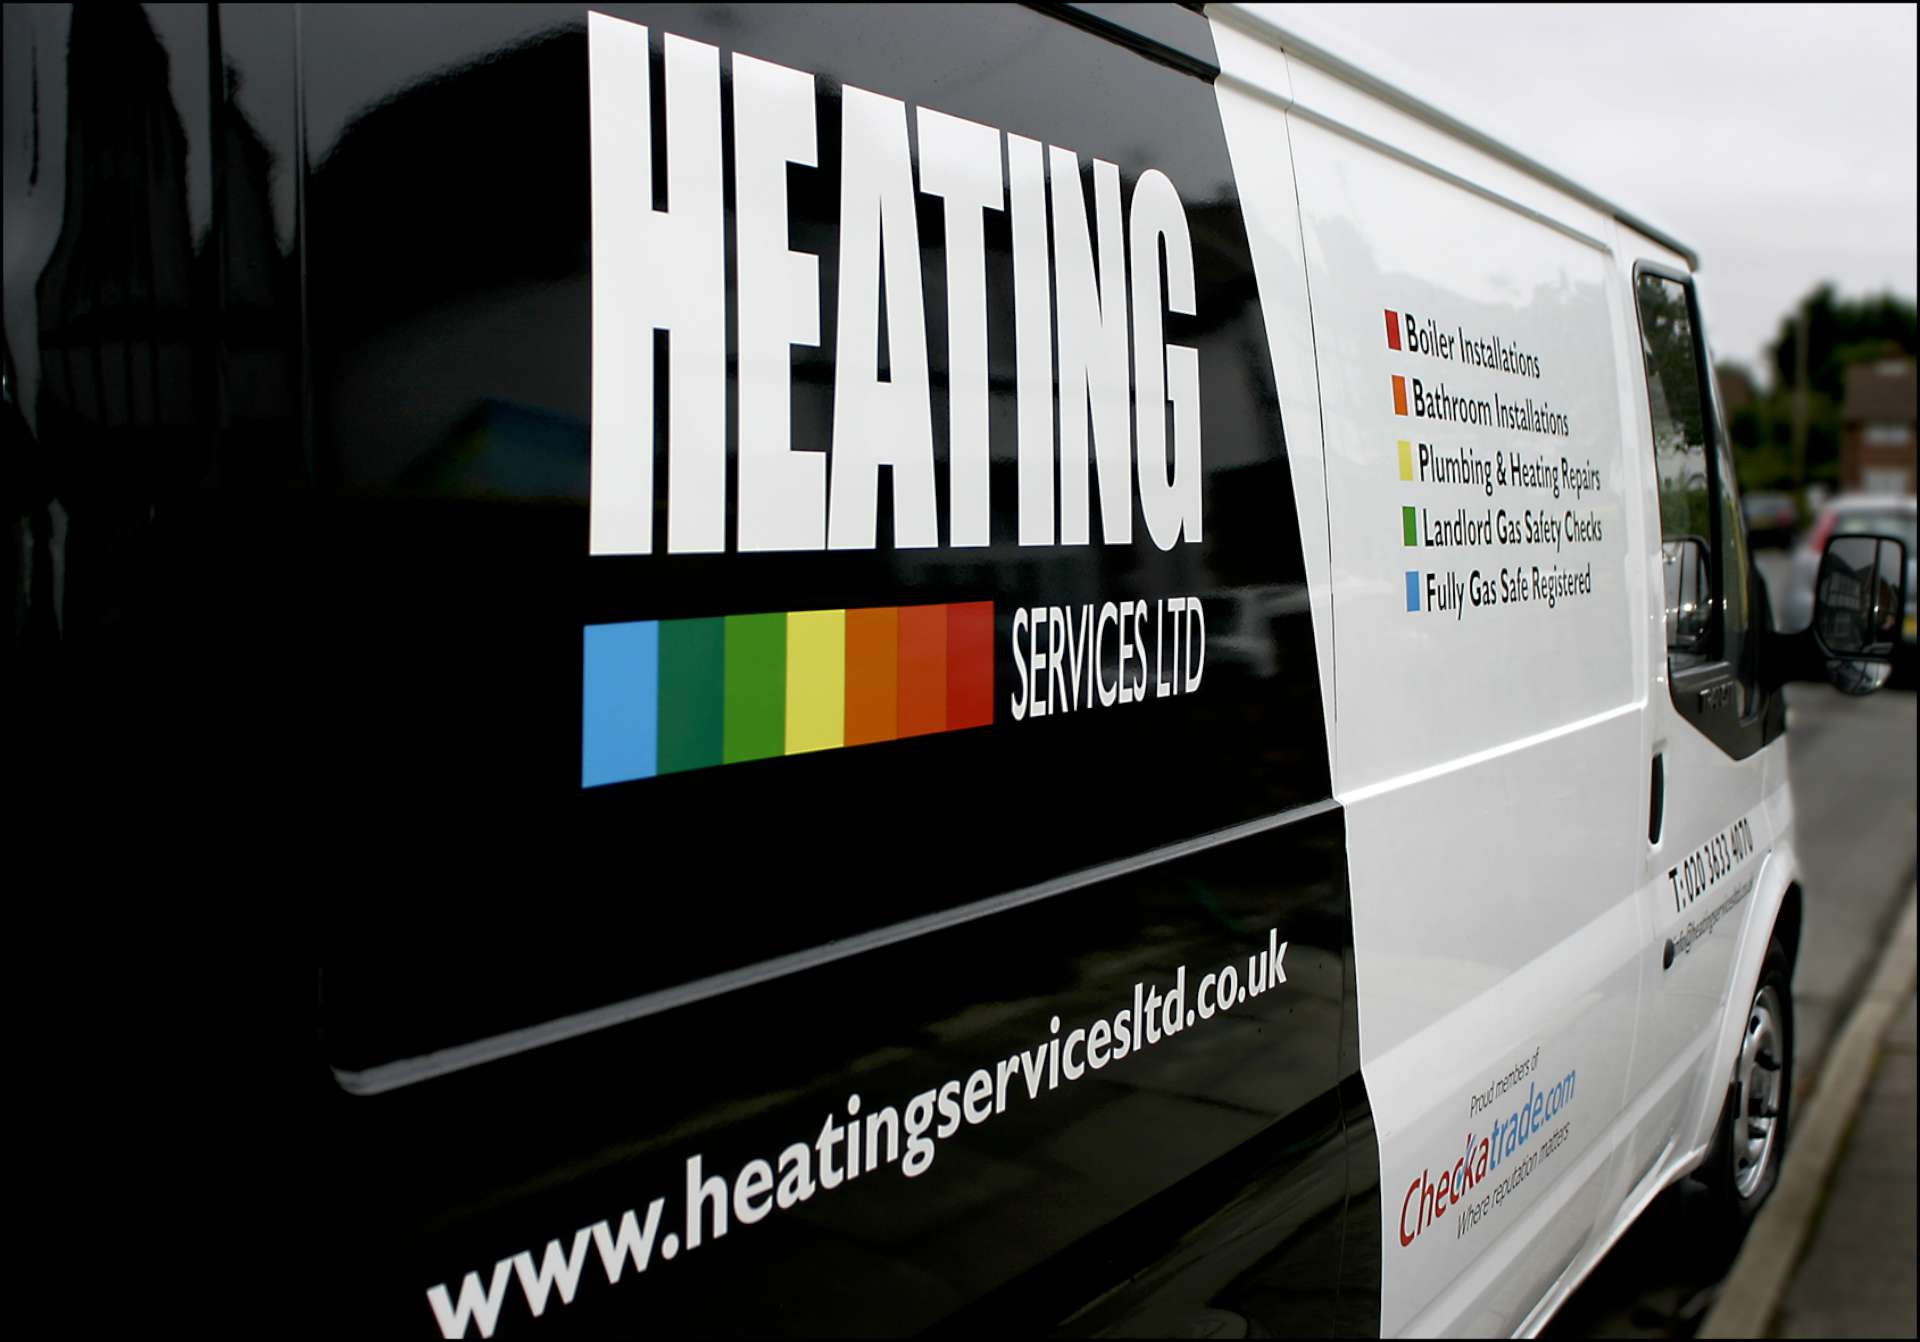 Plumbers Boiler Installation_ Service and Repairs and Bathroom Design and Installation by Heating Services Ltd in Bexley (2)